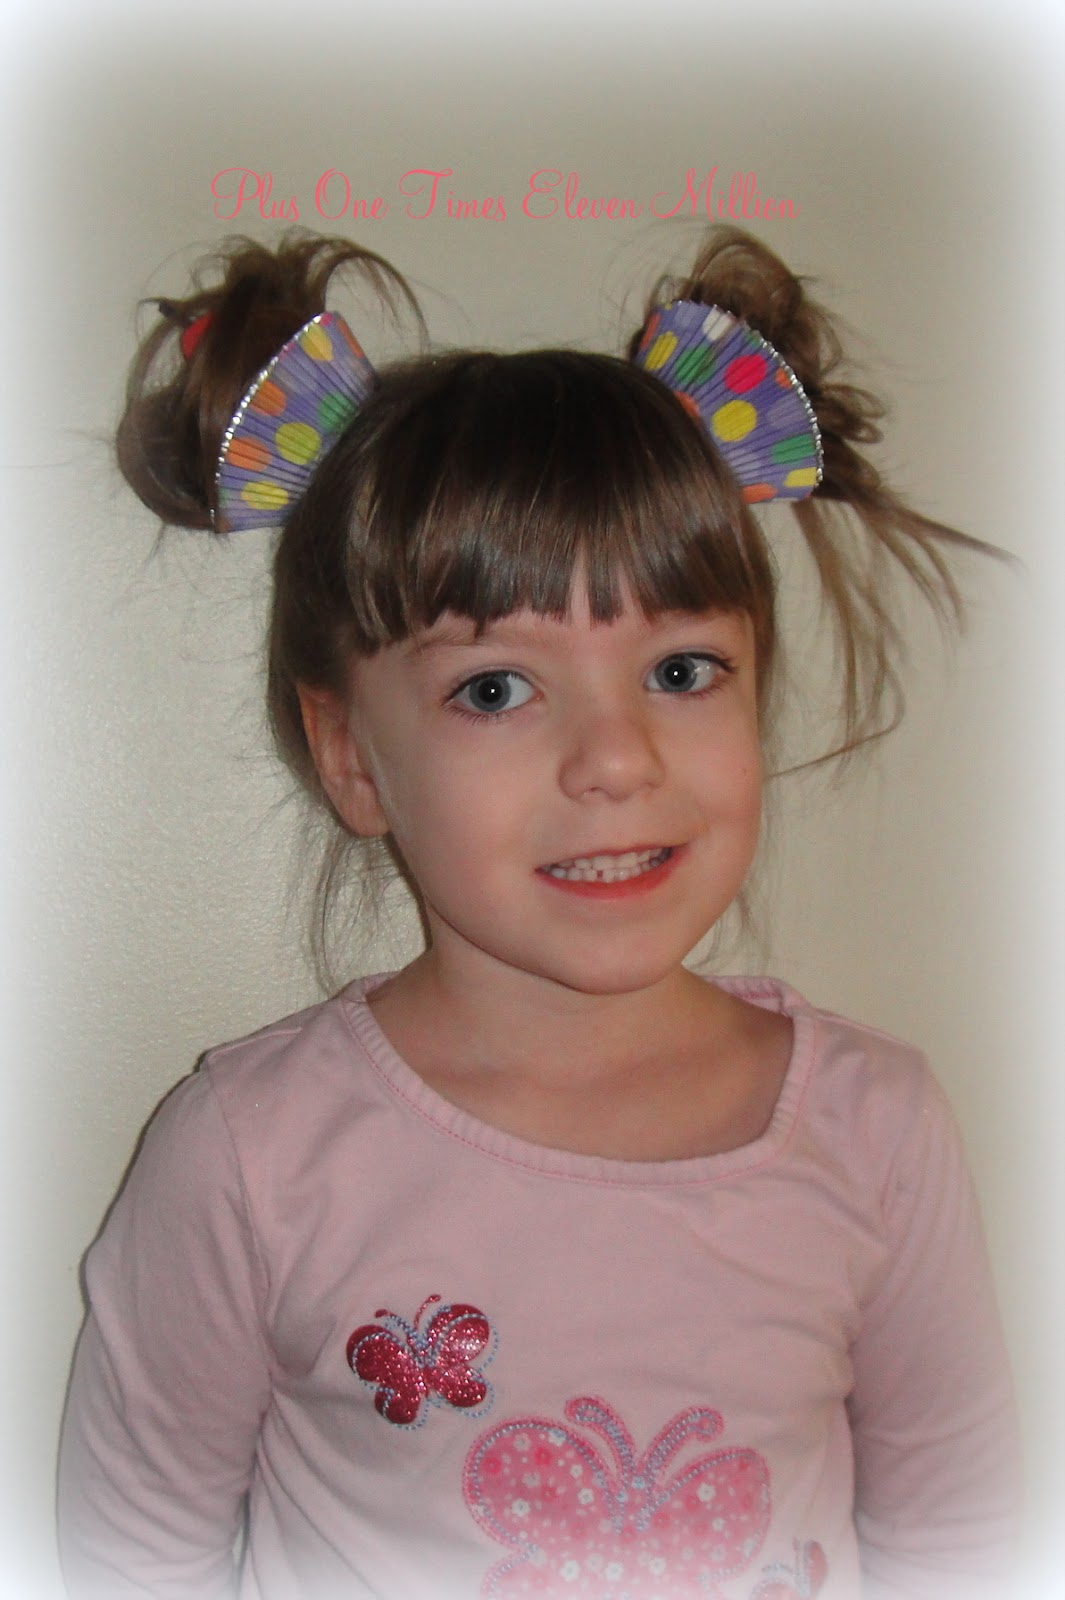 sc 1 st  Plus One Times Eleven Million & Plus One Times Eleven Million: Dr. Seuss Week - Crazy Hair Day